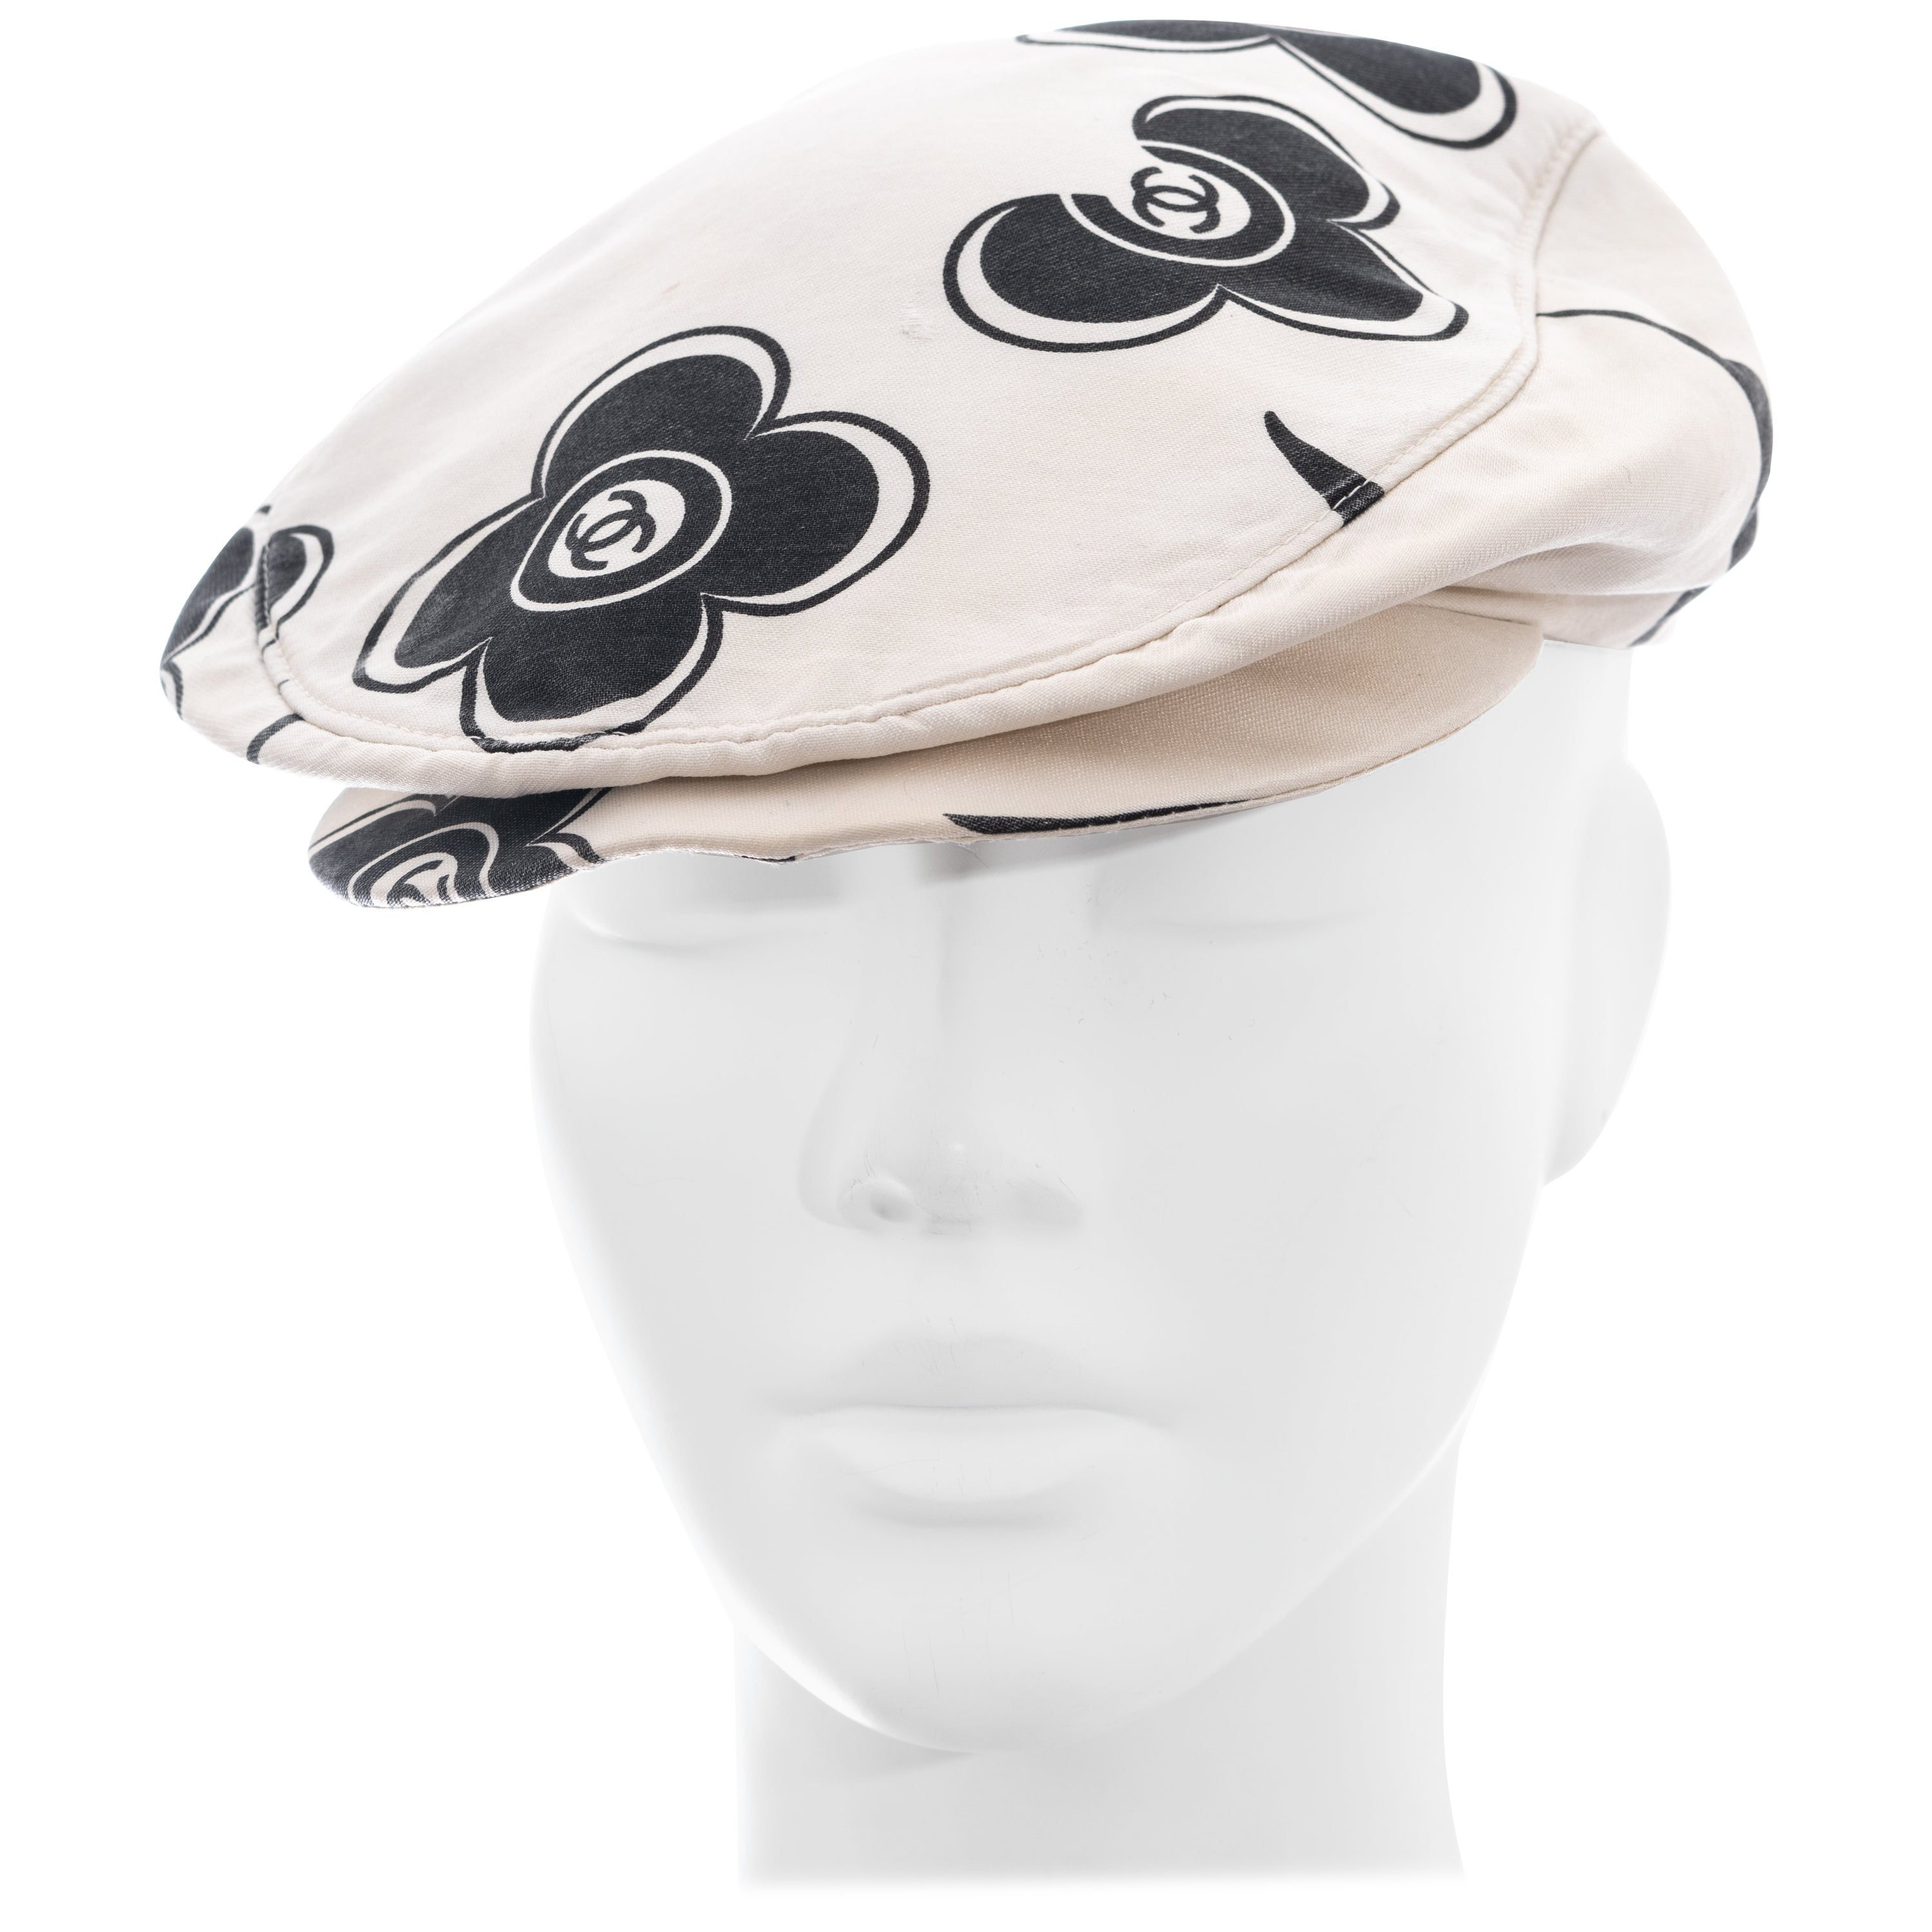 Chanel by Karl Lagerfeld white and black silk flat cap, ss 2002